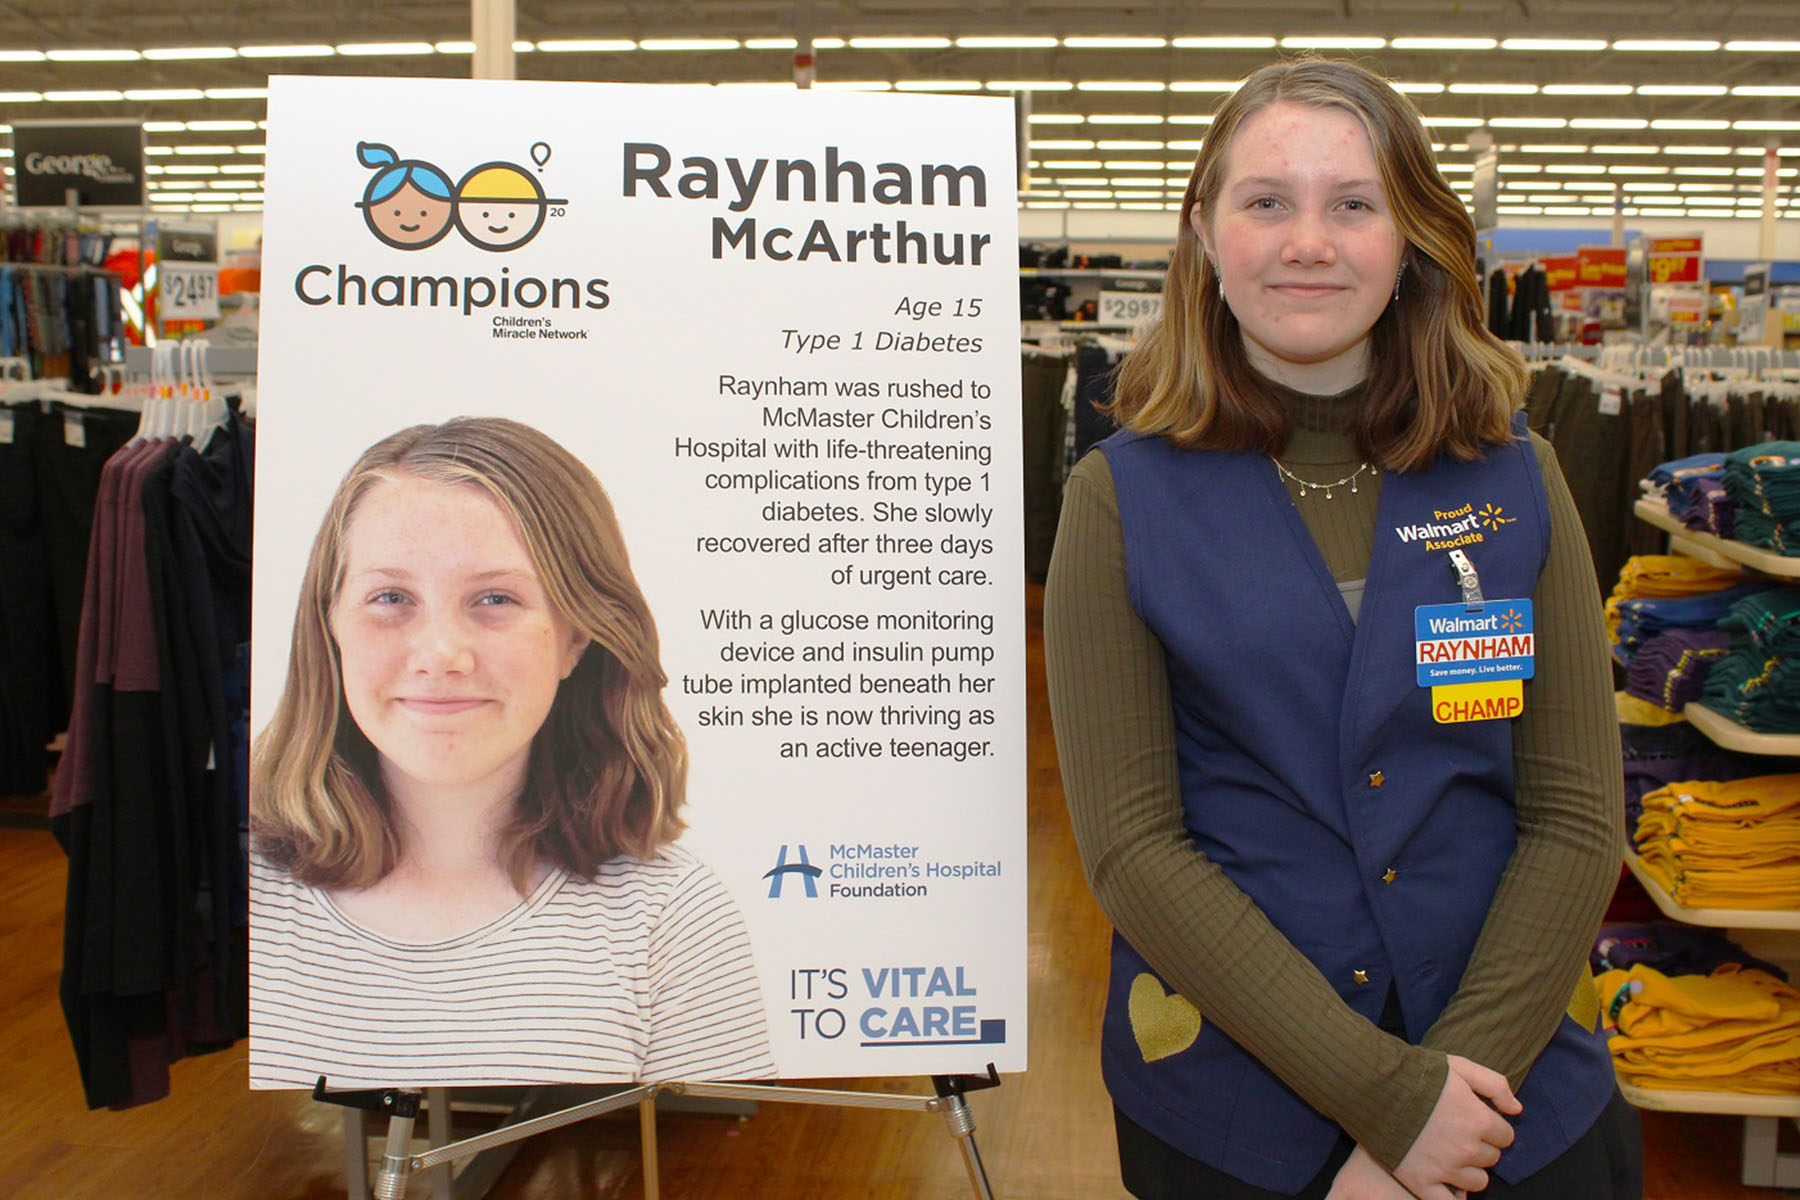 Raynham at the Champions launch event